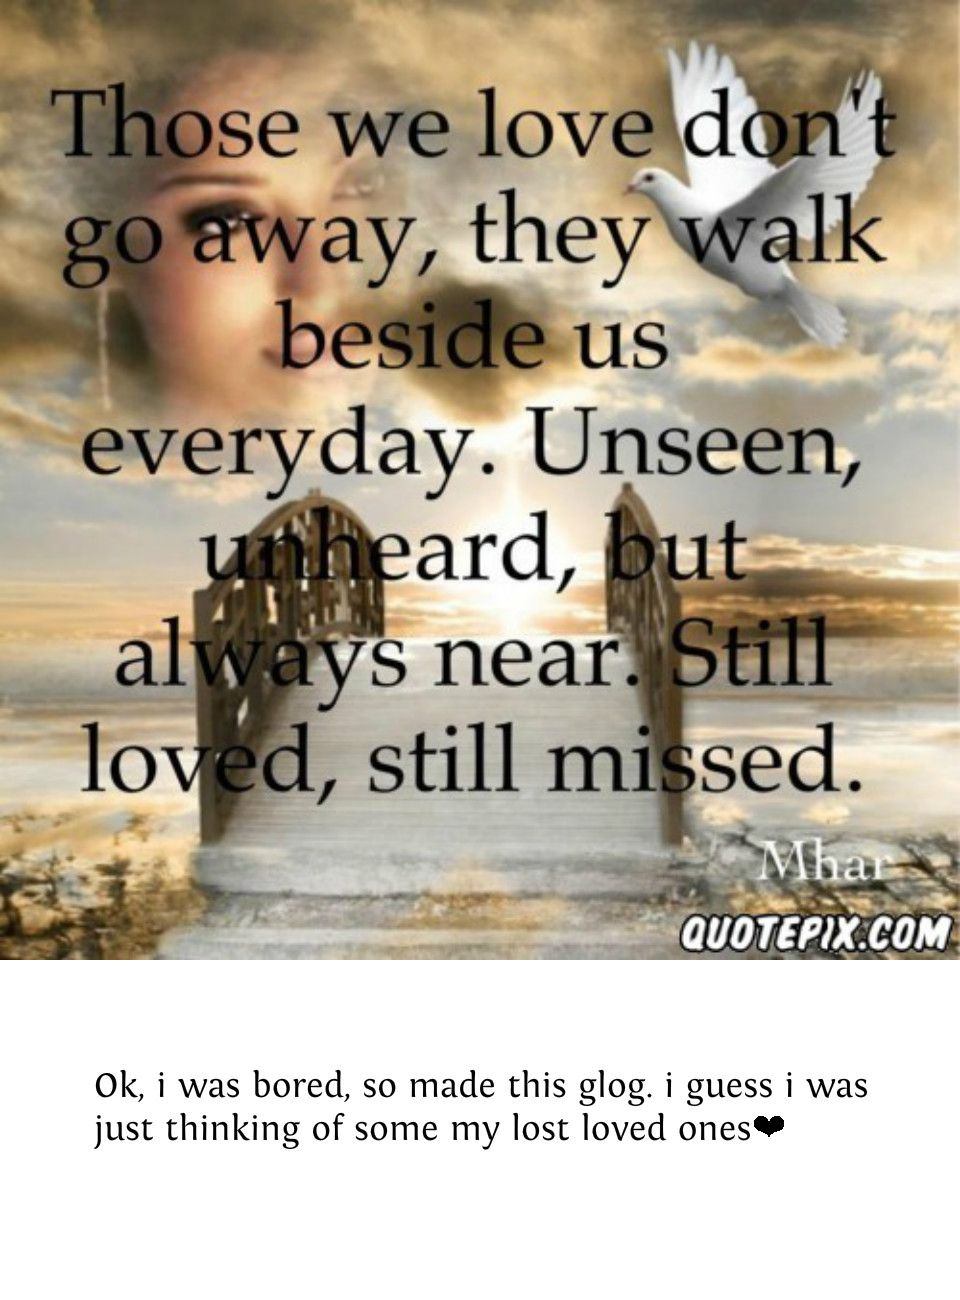 Memory Of Lost Loved Ones Quotes : For lost loved ones IN MEMORY Pinterest Lost, In love and Quotes ...